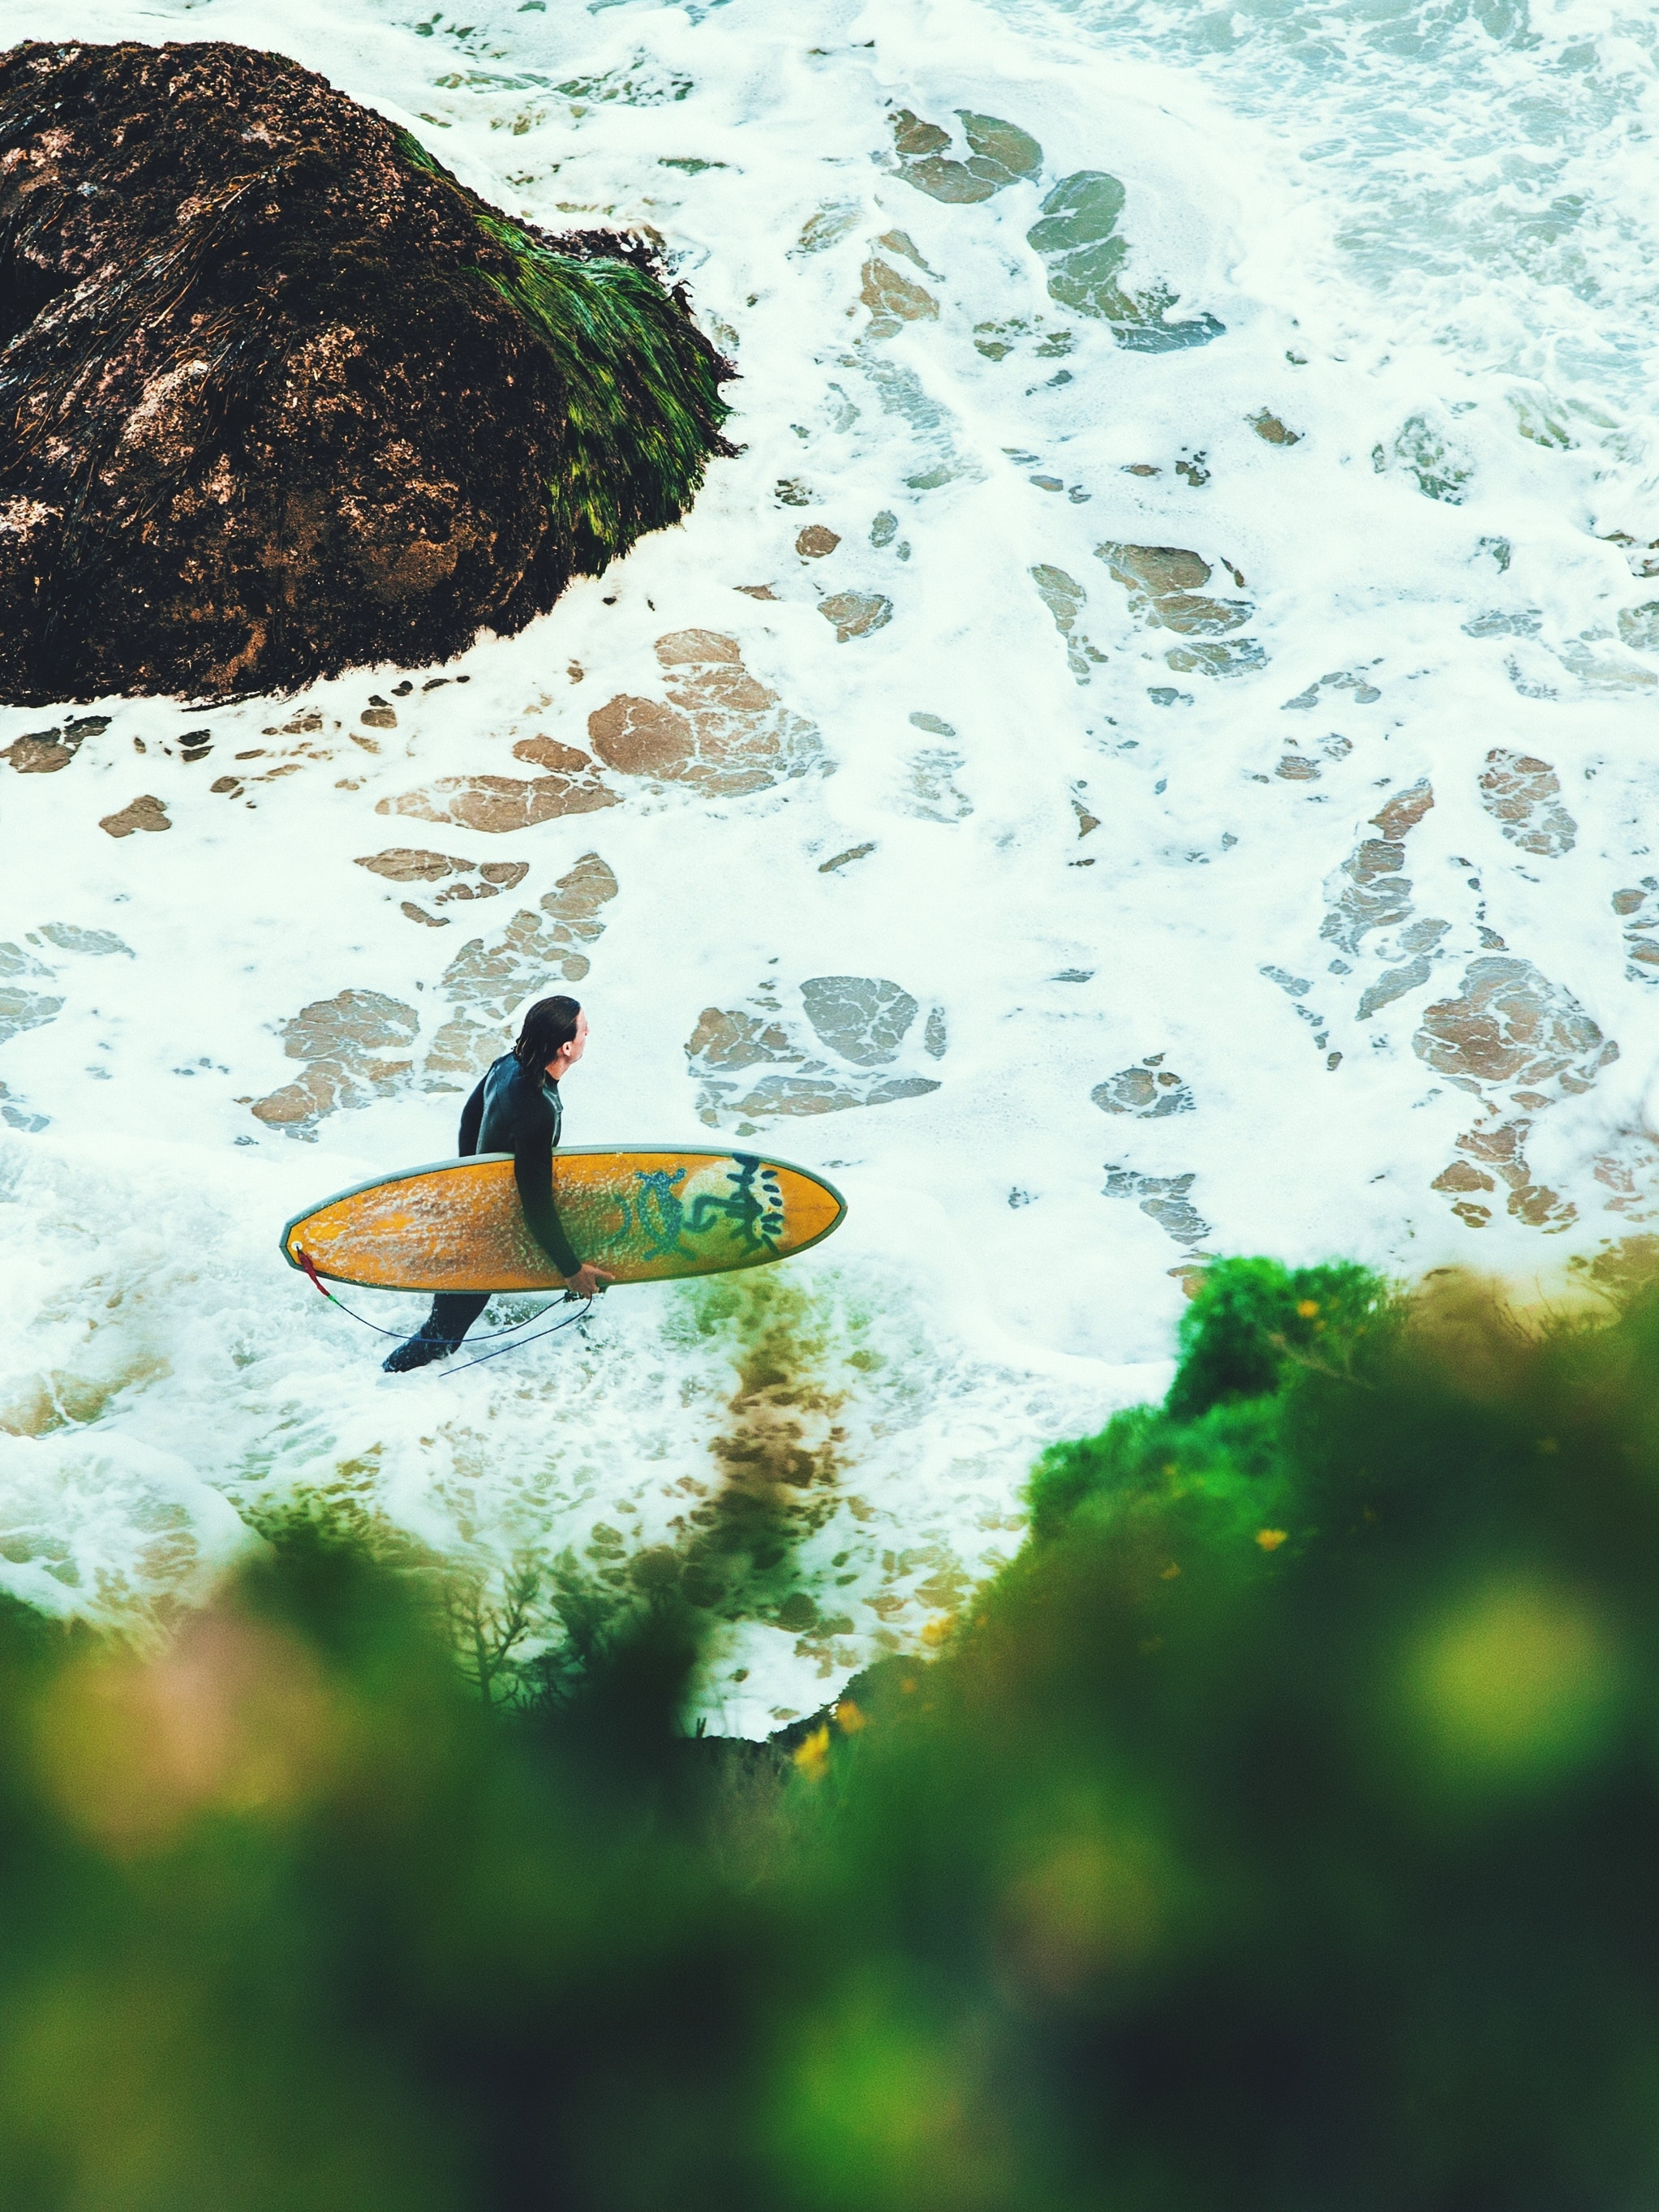 A male surfer in a wetsuit carrying a board into the foaming sea, surrounded by rock formations at Point Dume